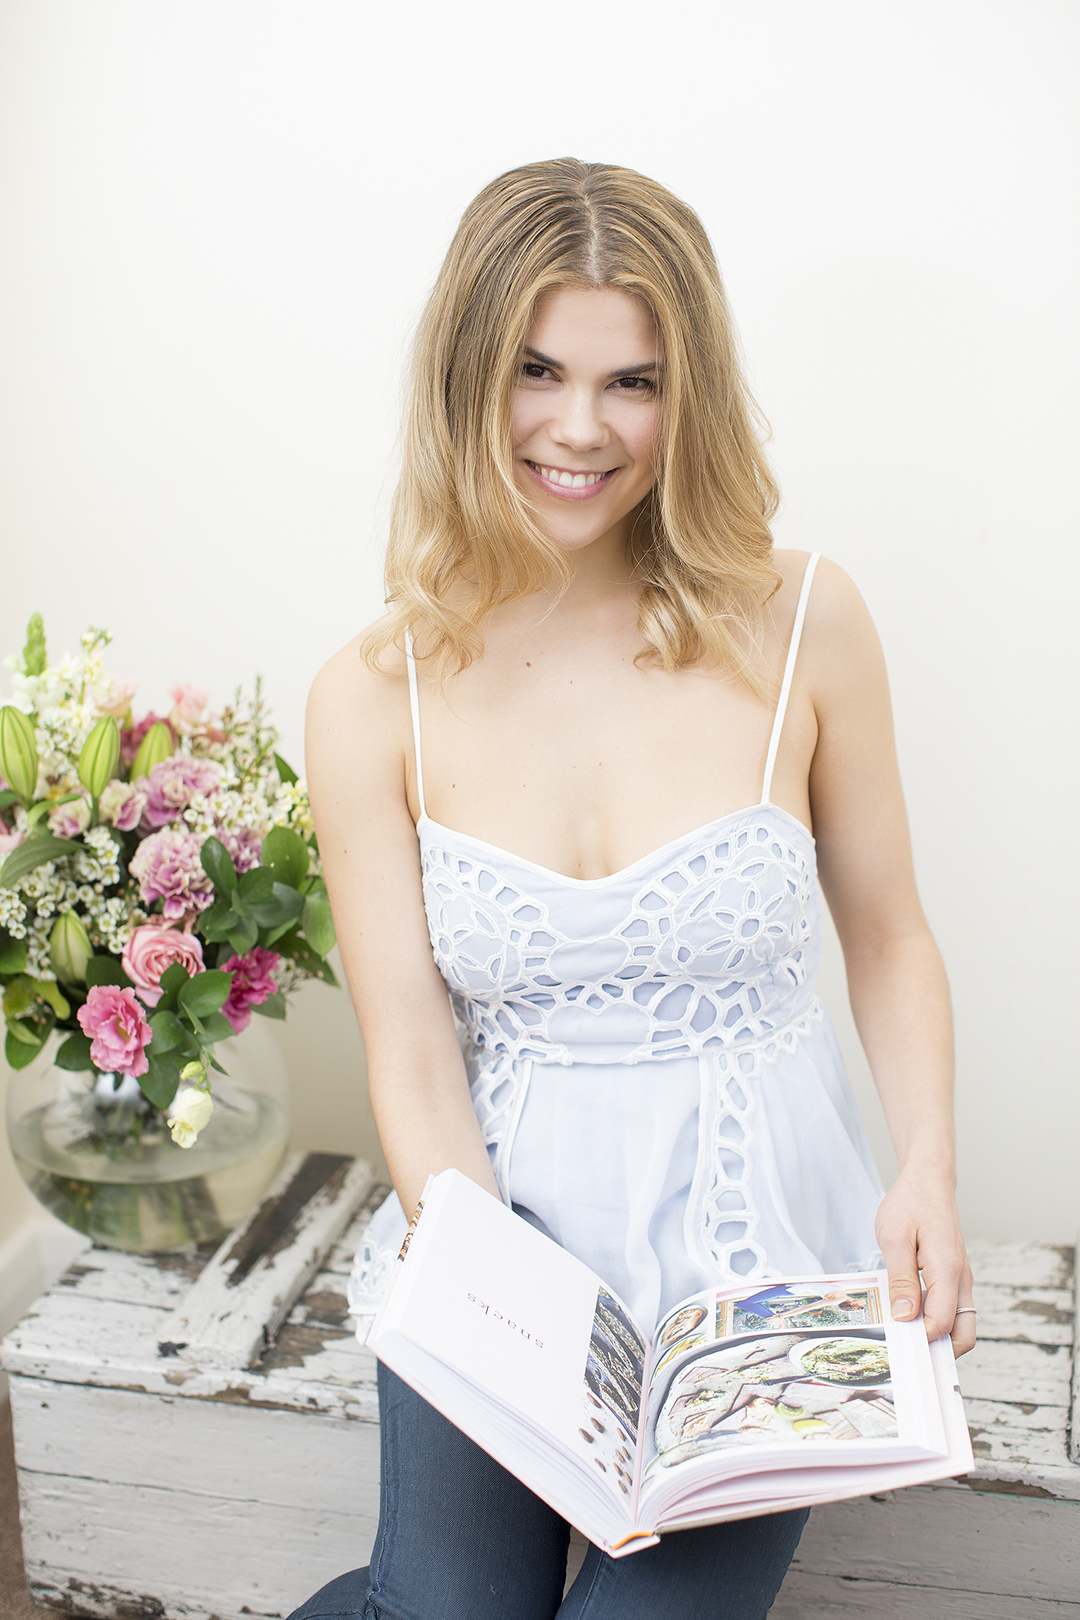 Madeleine Shaw, A Year of Beautiful Eating